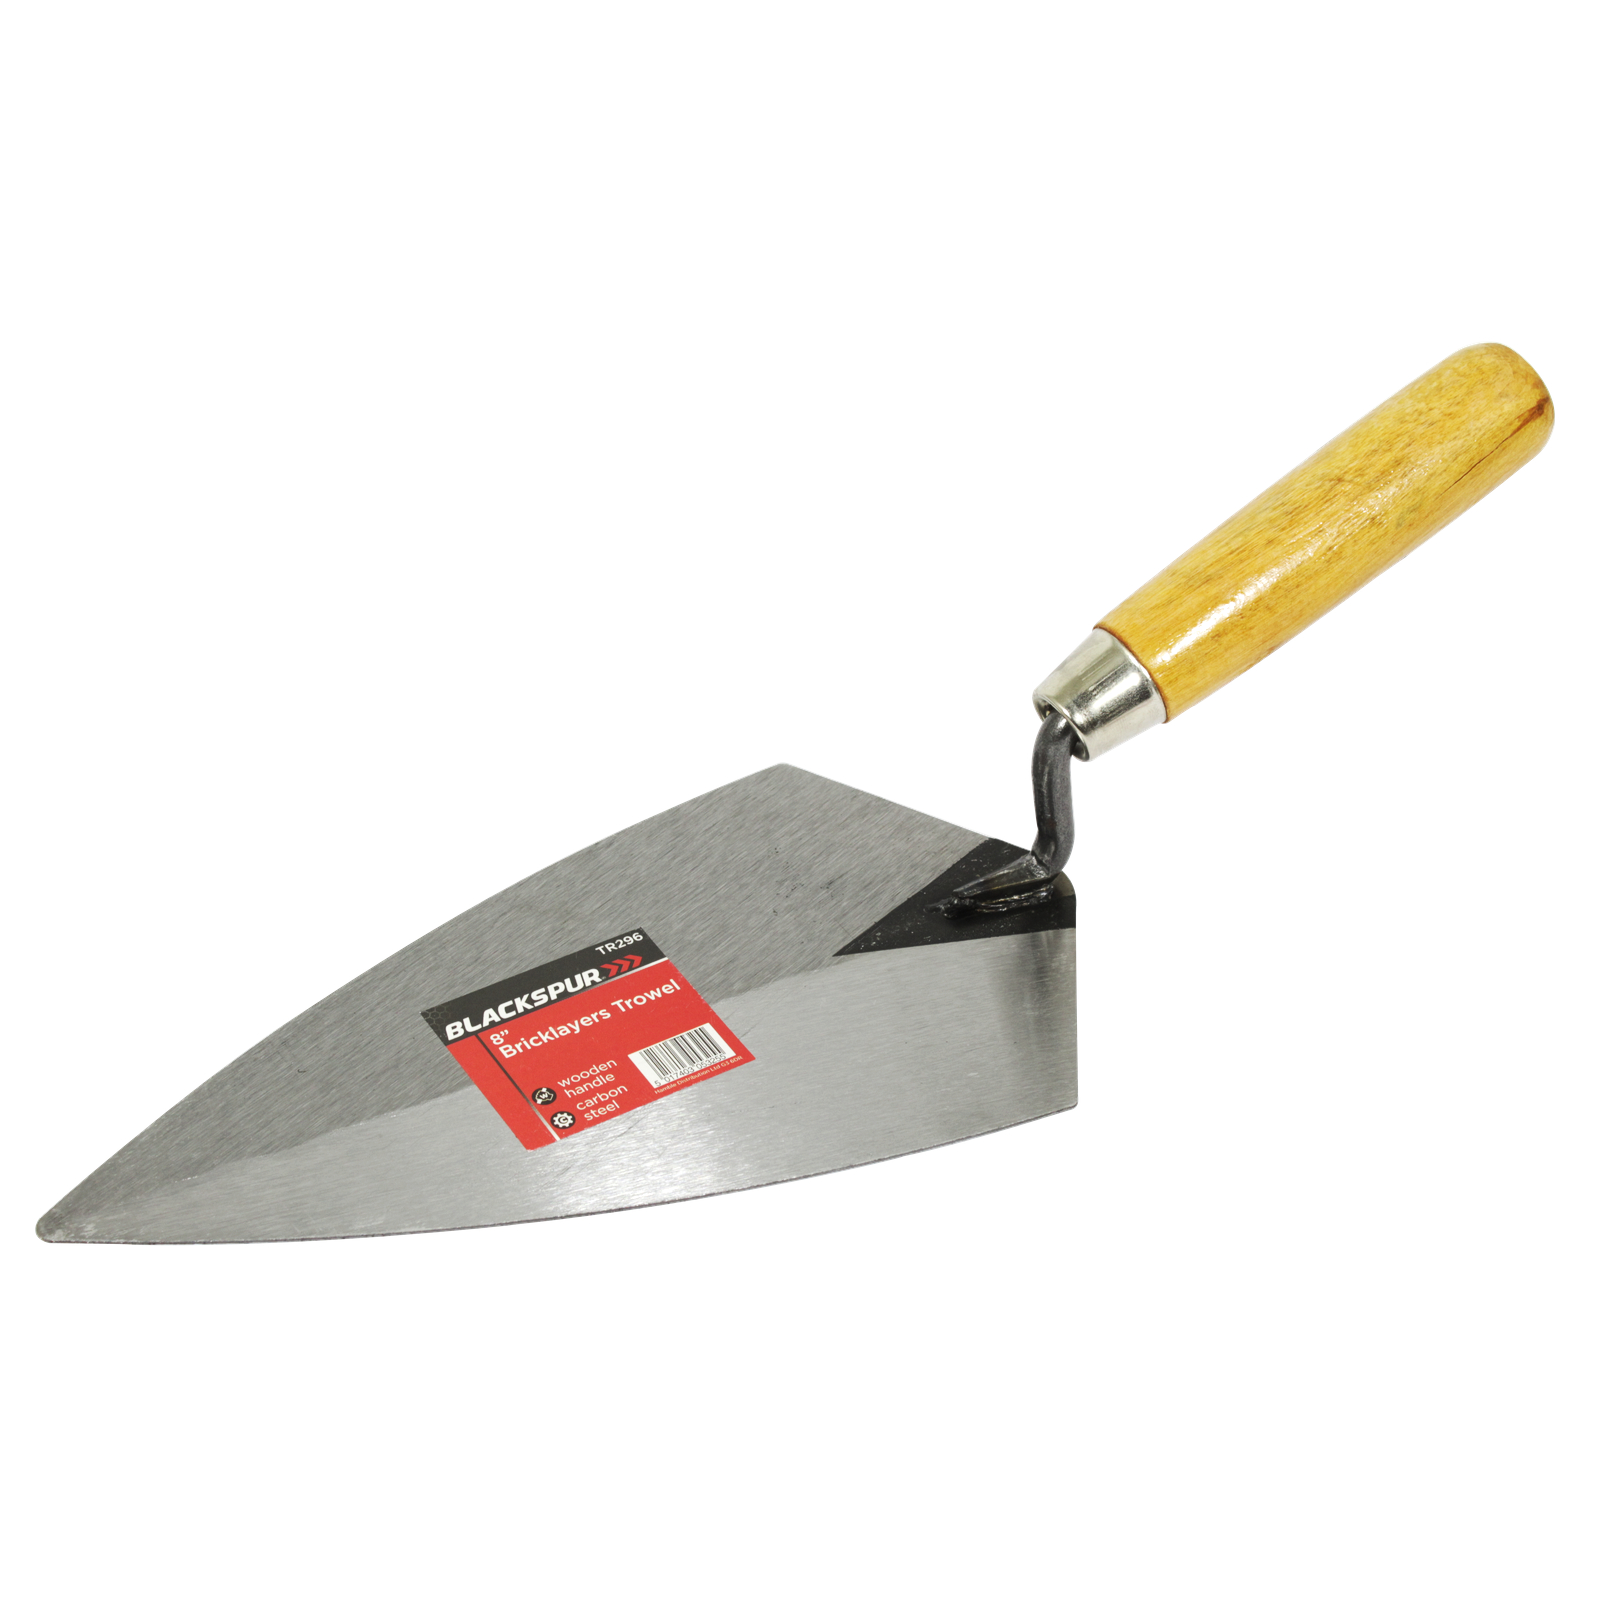 BLACKSPUR BRICKLAYERS TROWEL 8